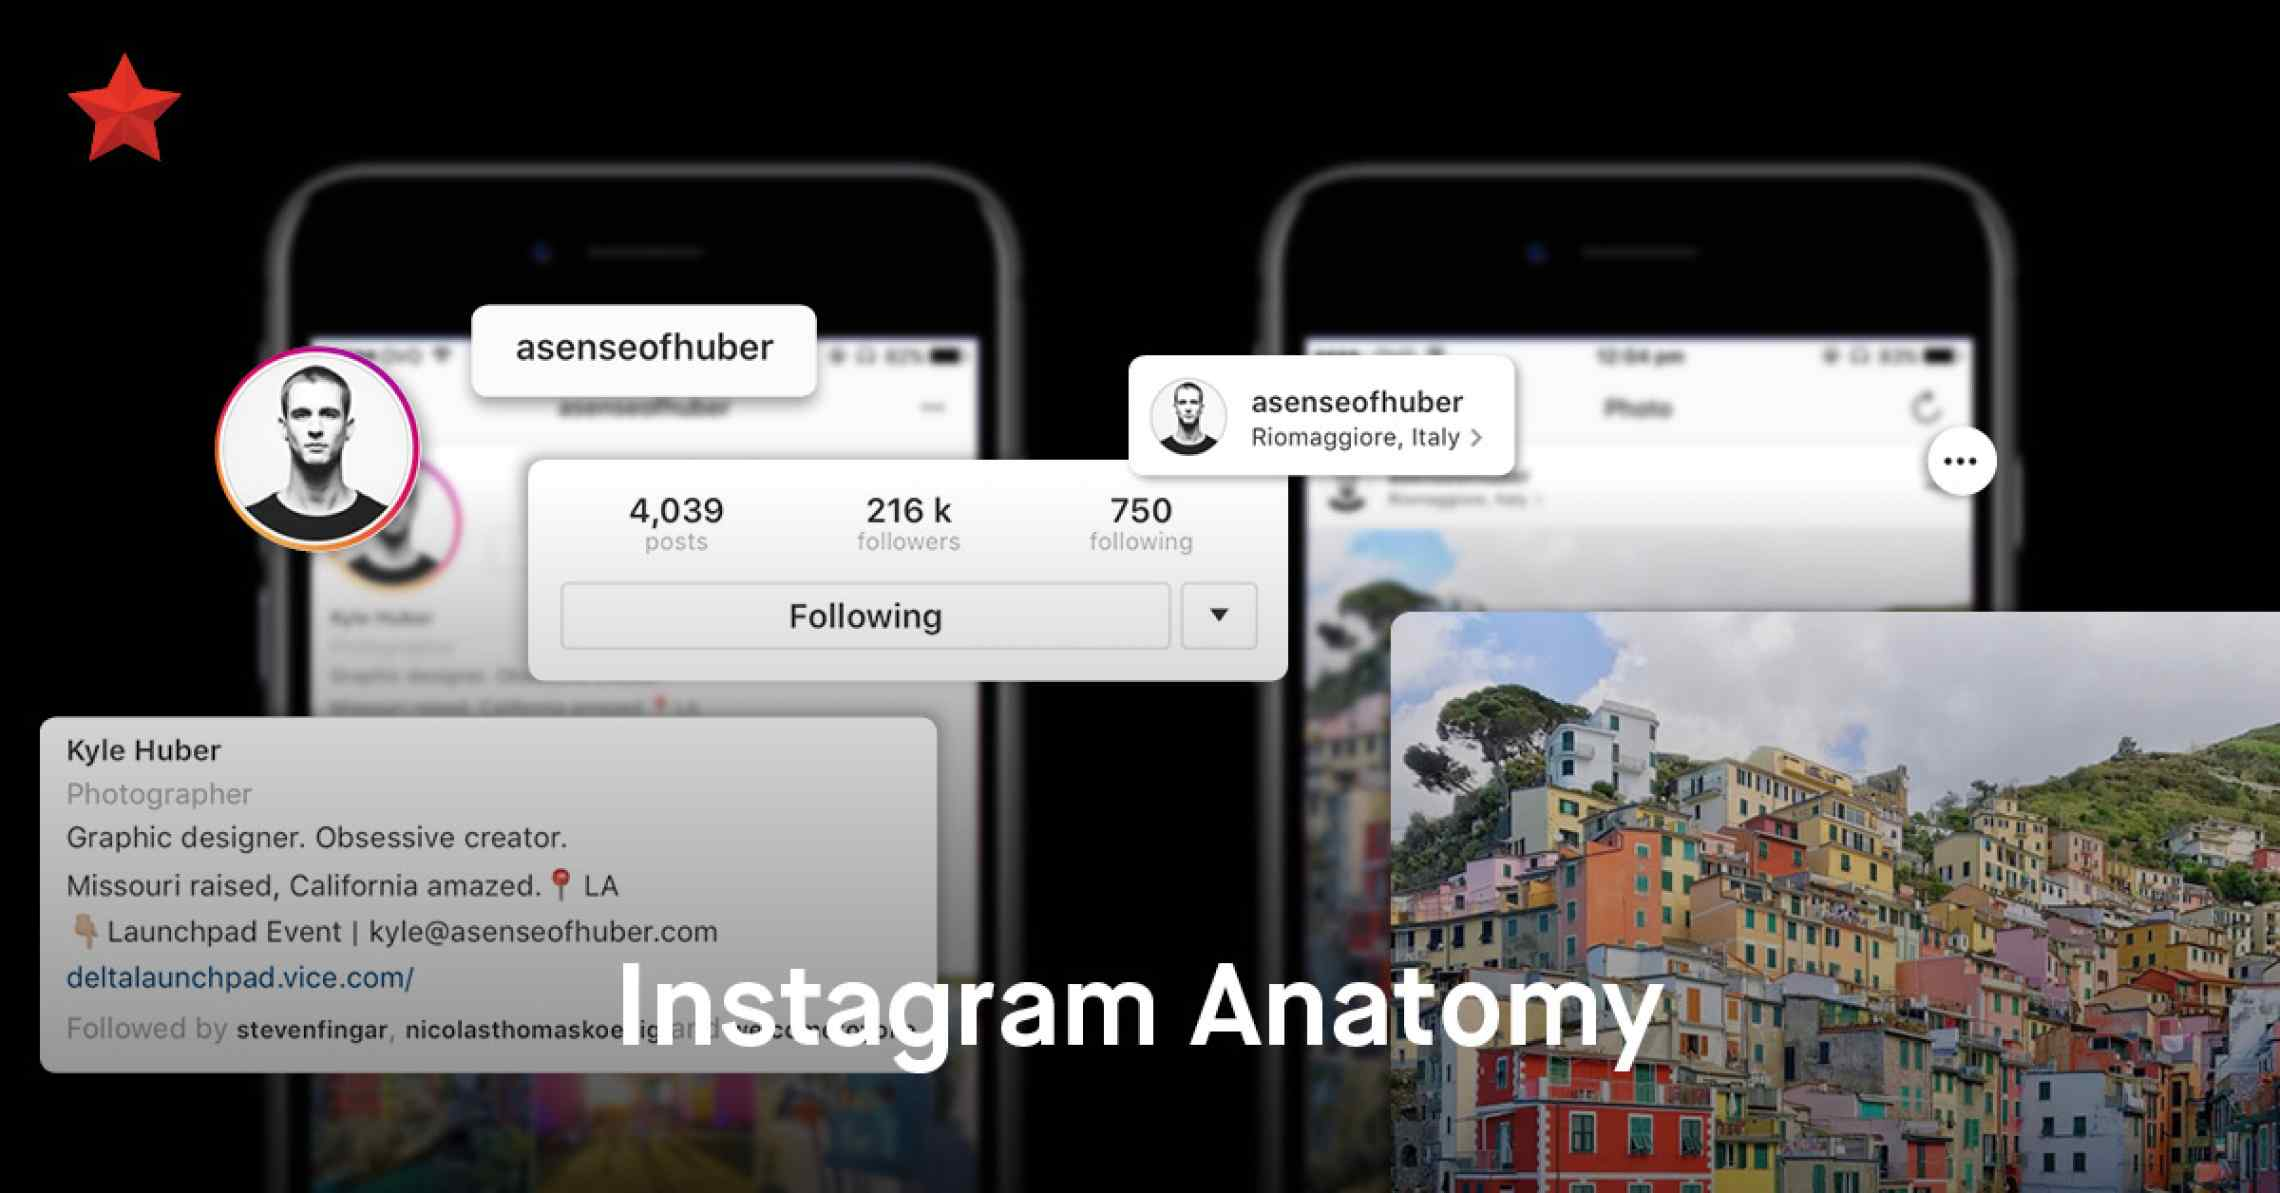 The Anatomy of Instagram